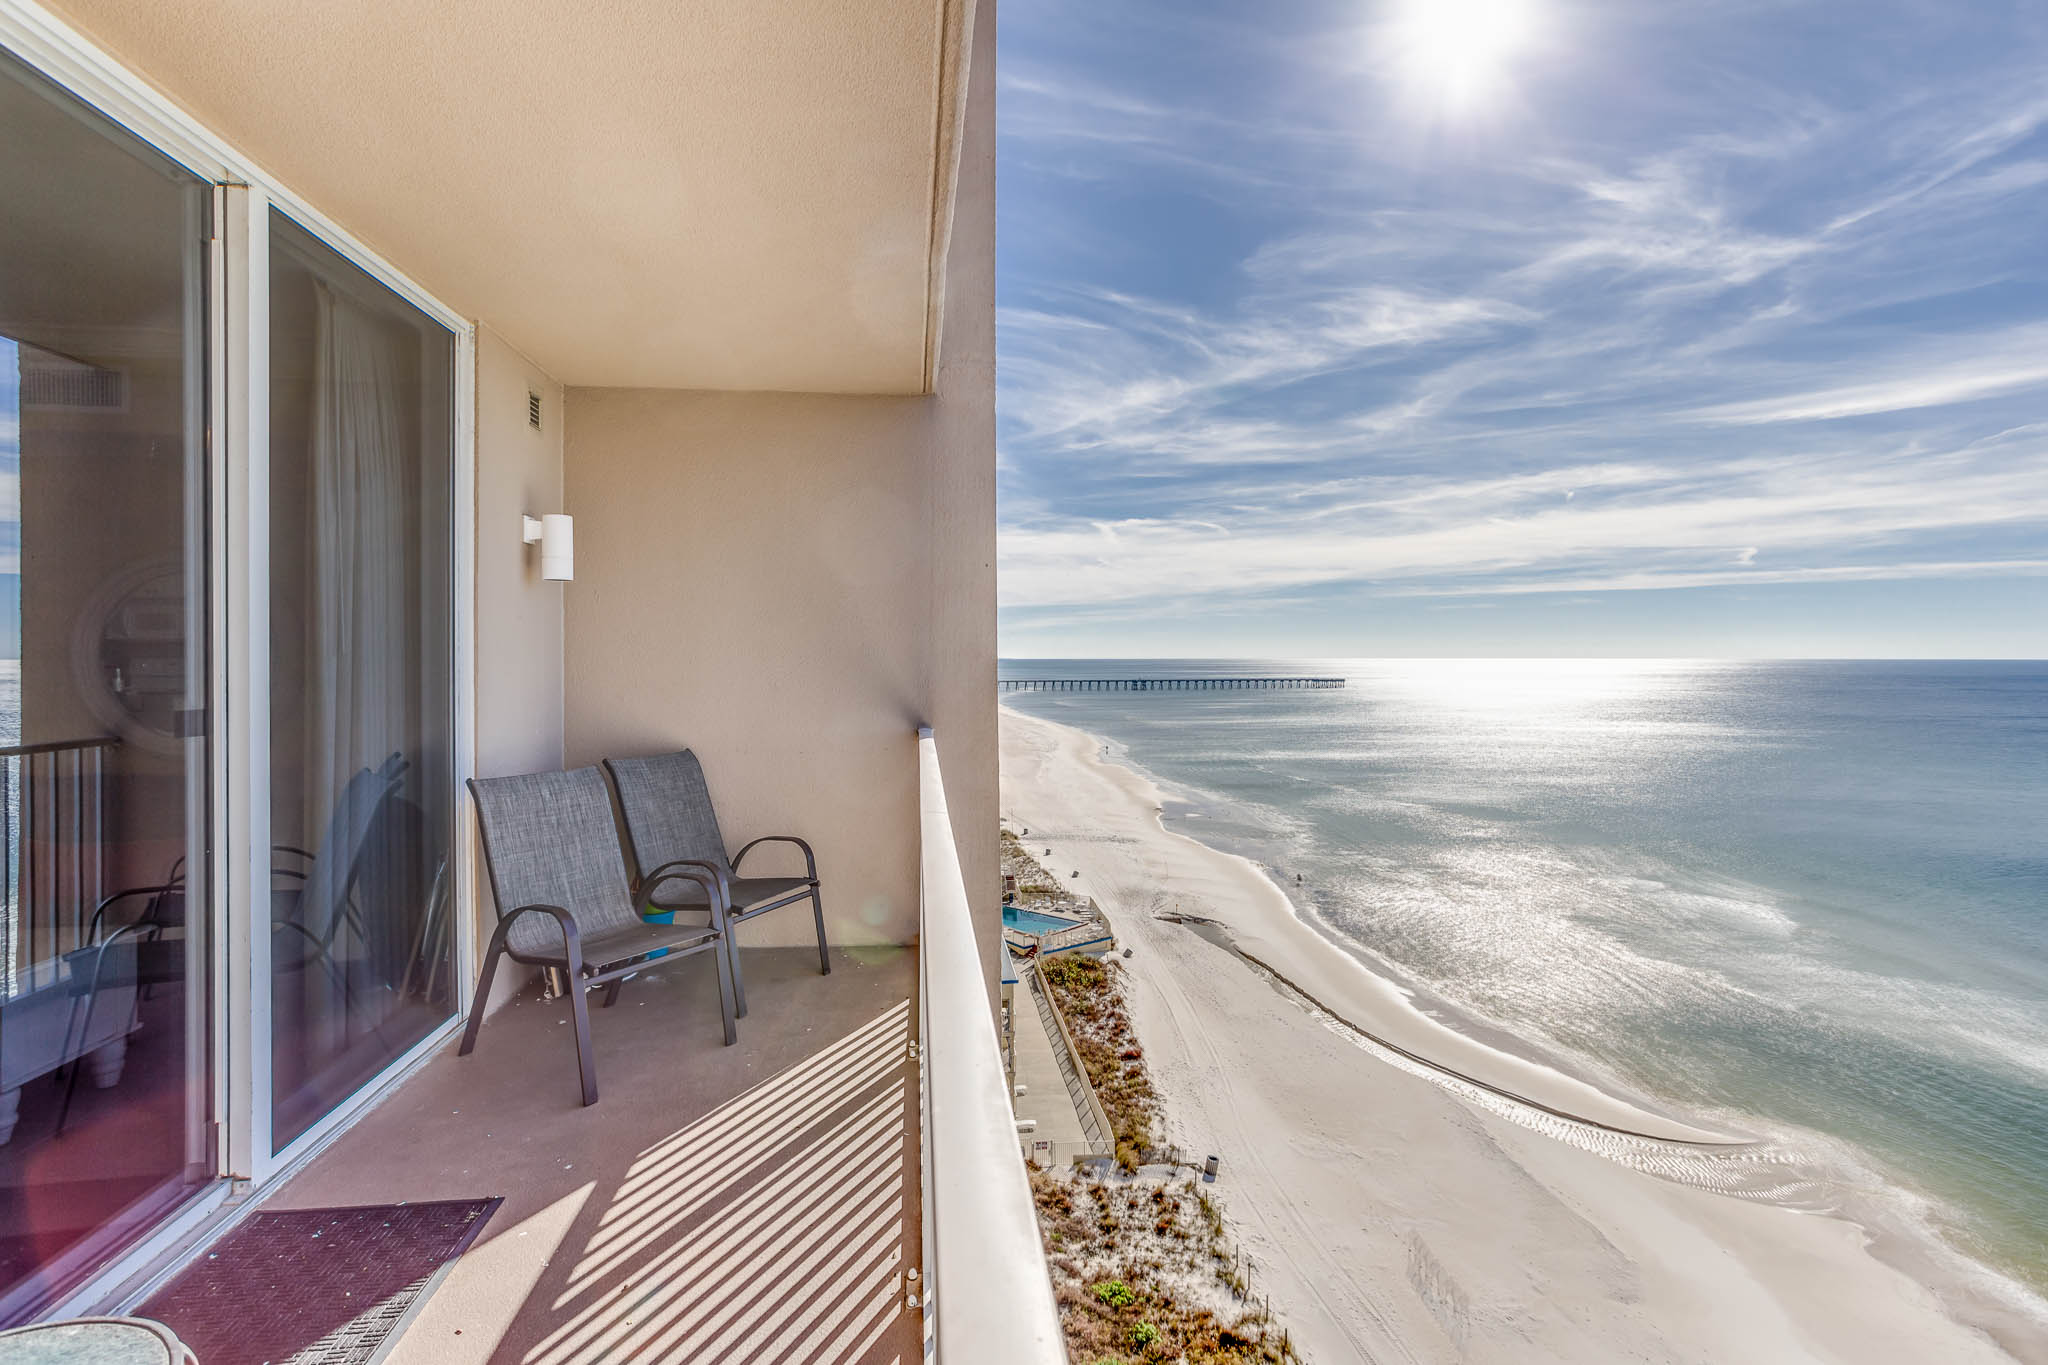 Copropriété pour l Vente à LOW FLOOR CONDO WITH PANORAMIC GULF VIEWS AND LUXURY AMENITIES 16819 Front Beach Road 914 Panama City Beach, Florida, 32413 États-Unis